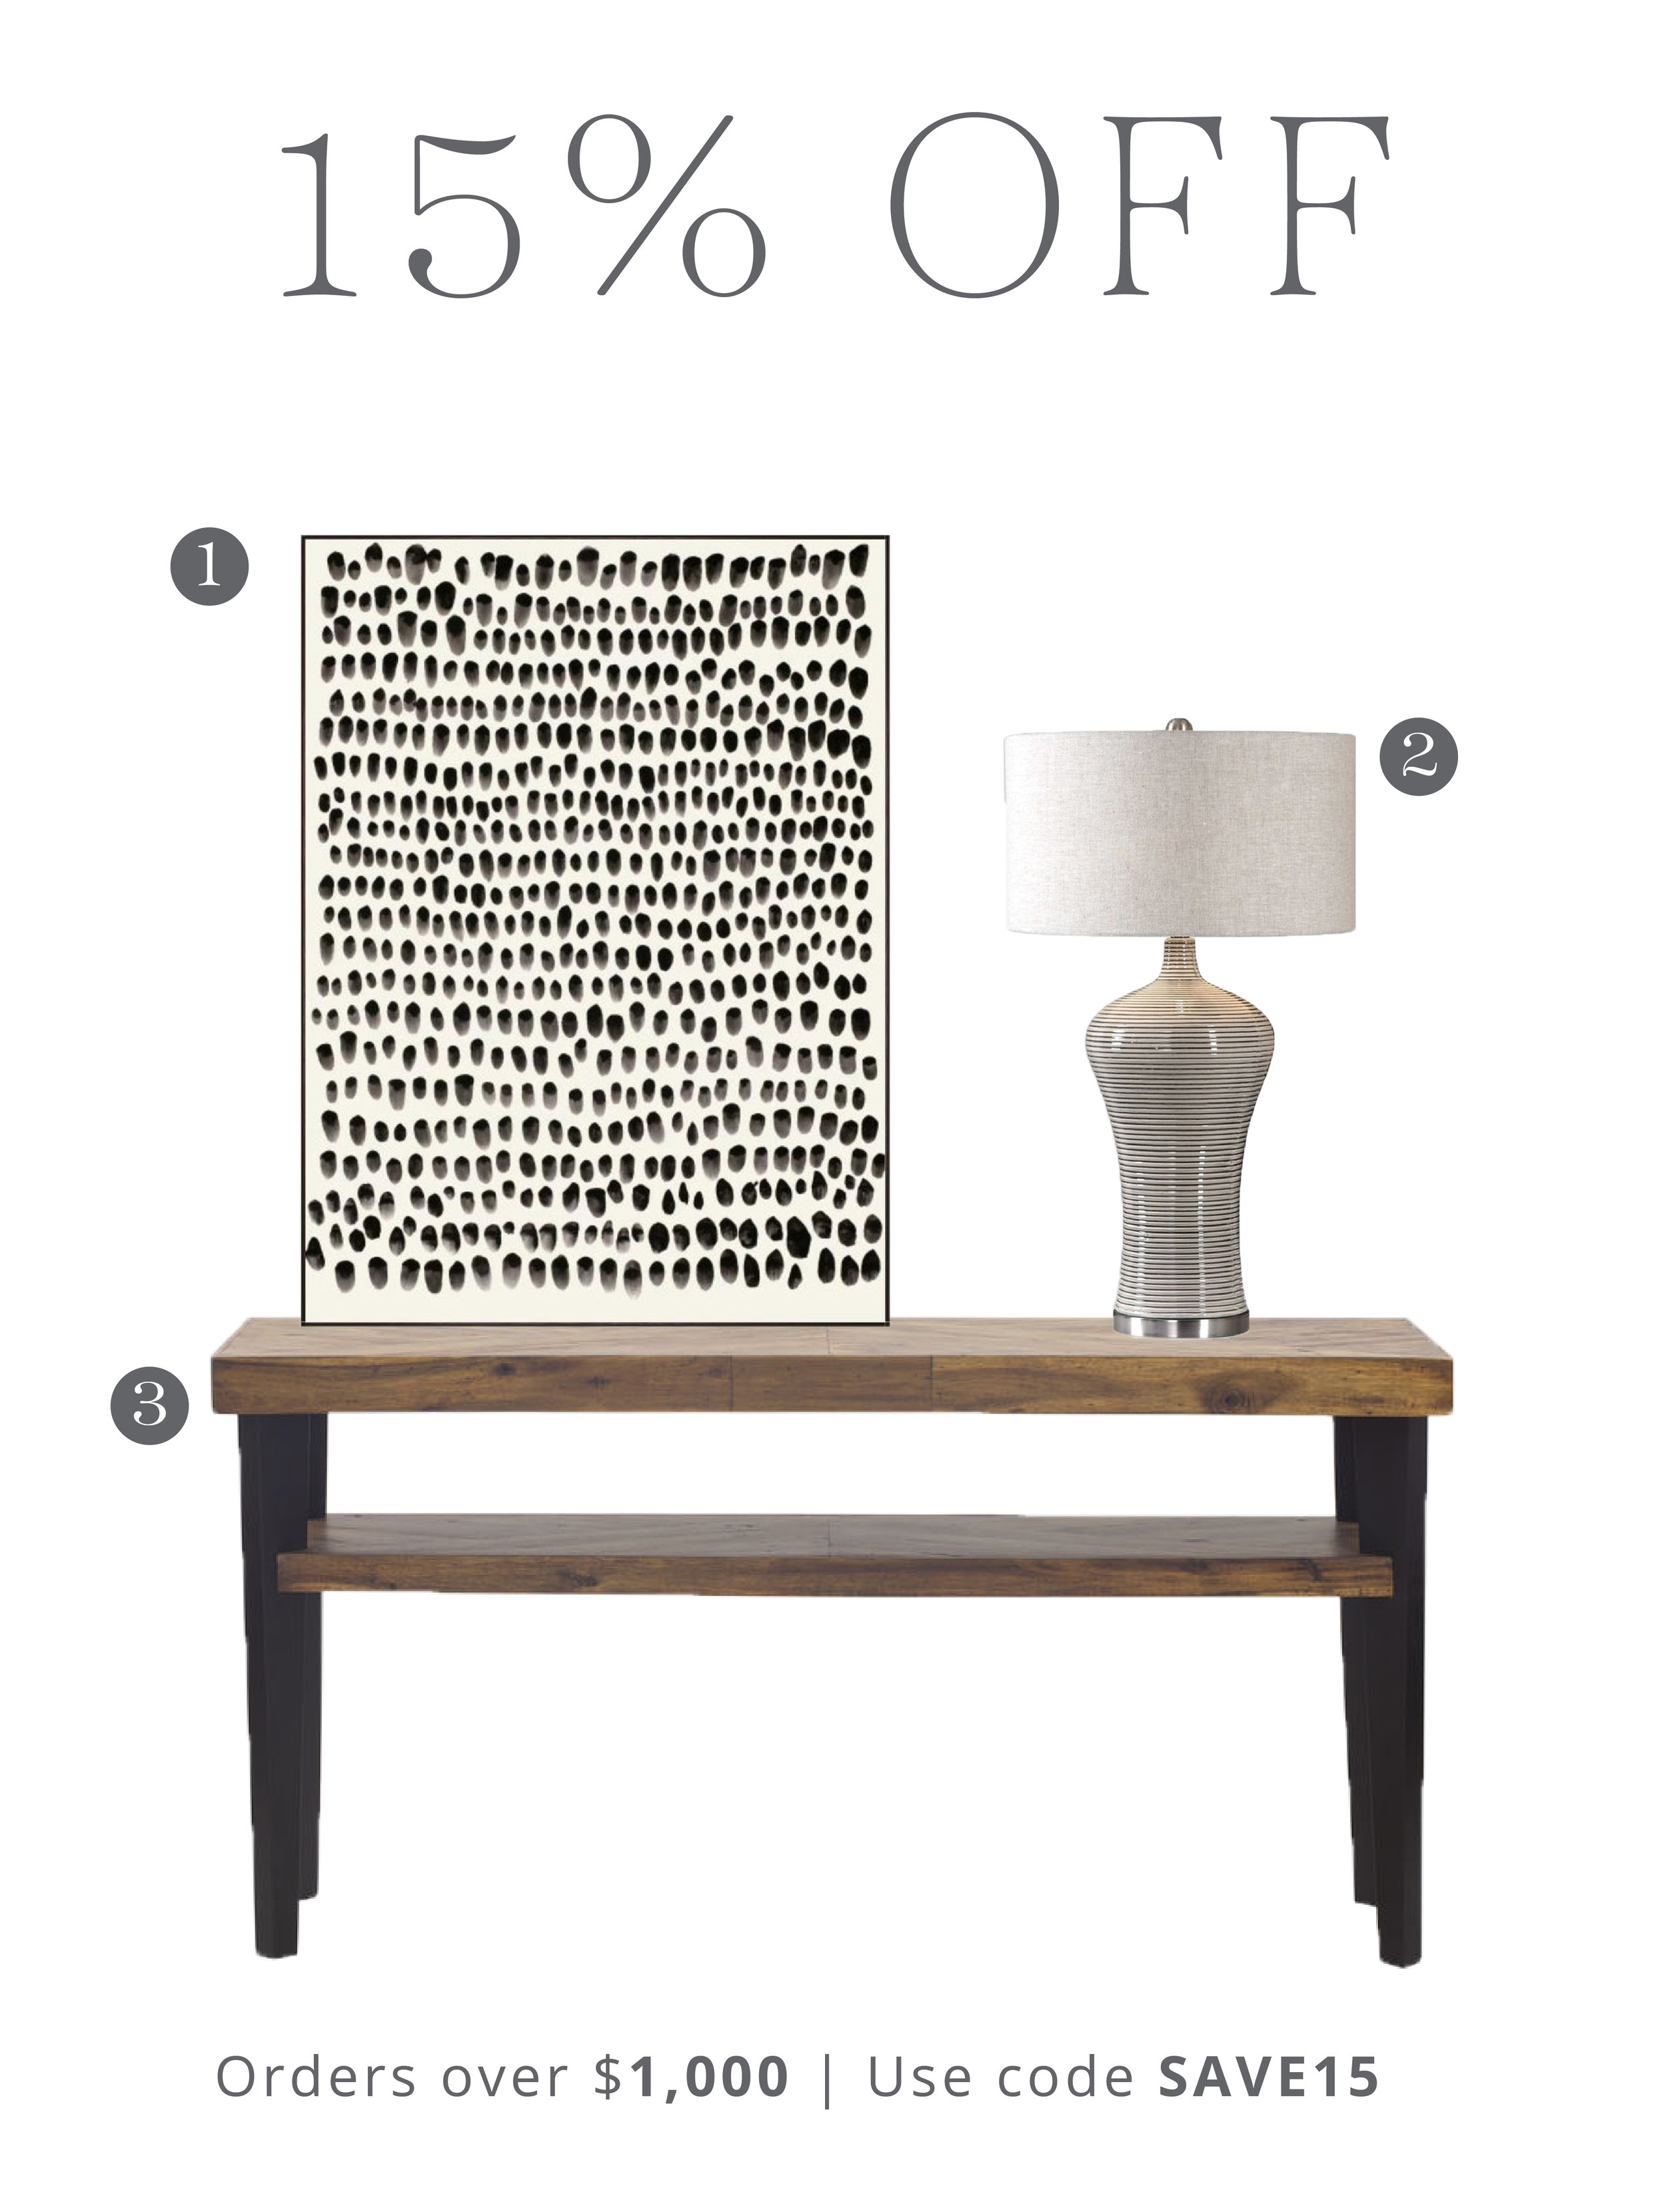 1.  Black Dots Art  | 2.  Dubrava Table Lamp  | 3.  Park Console Table